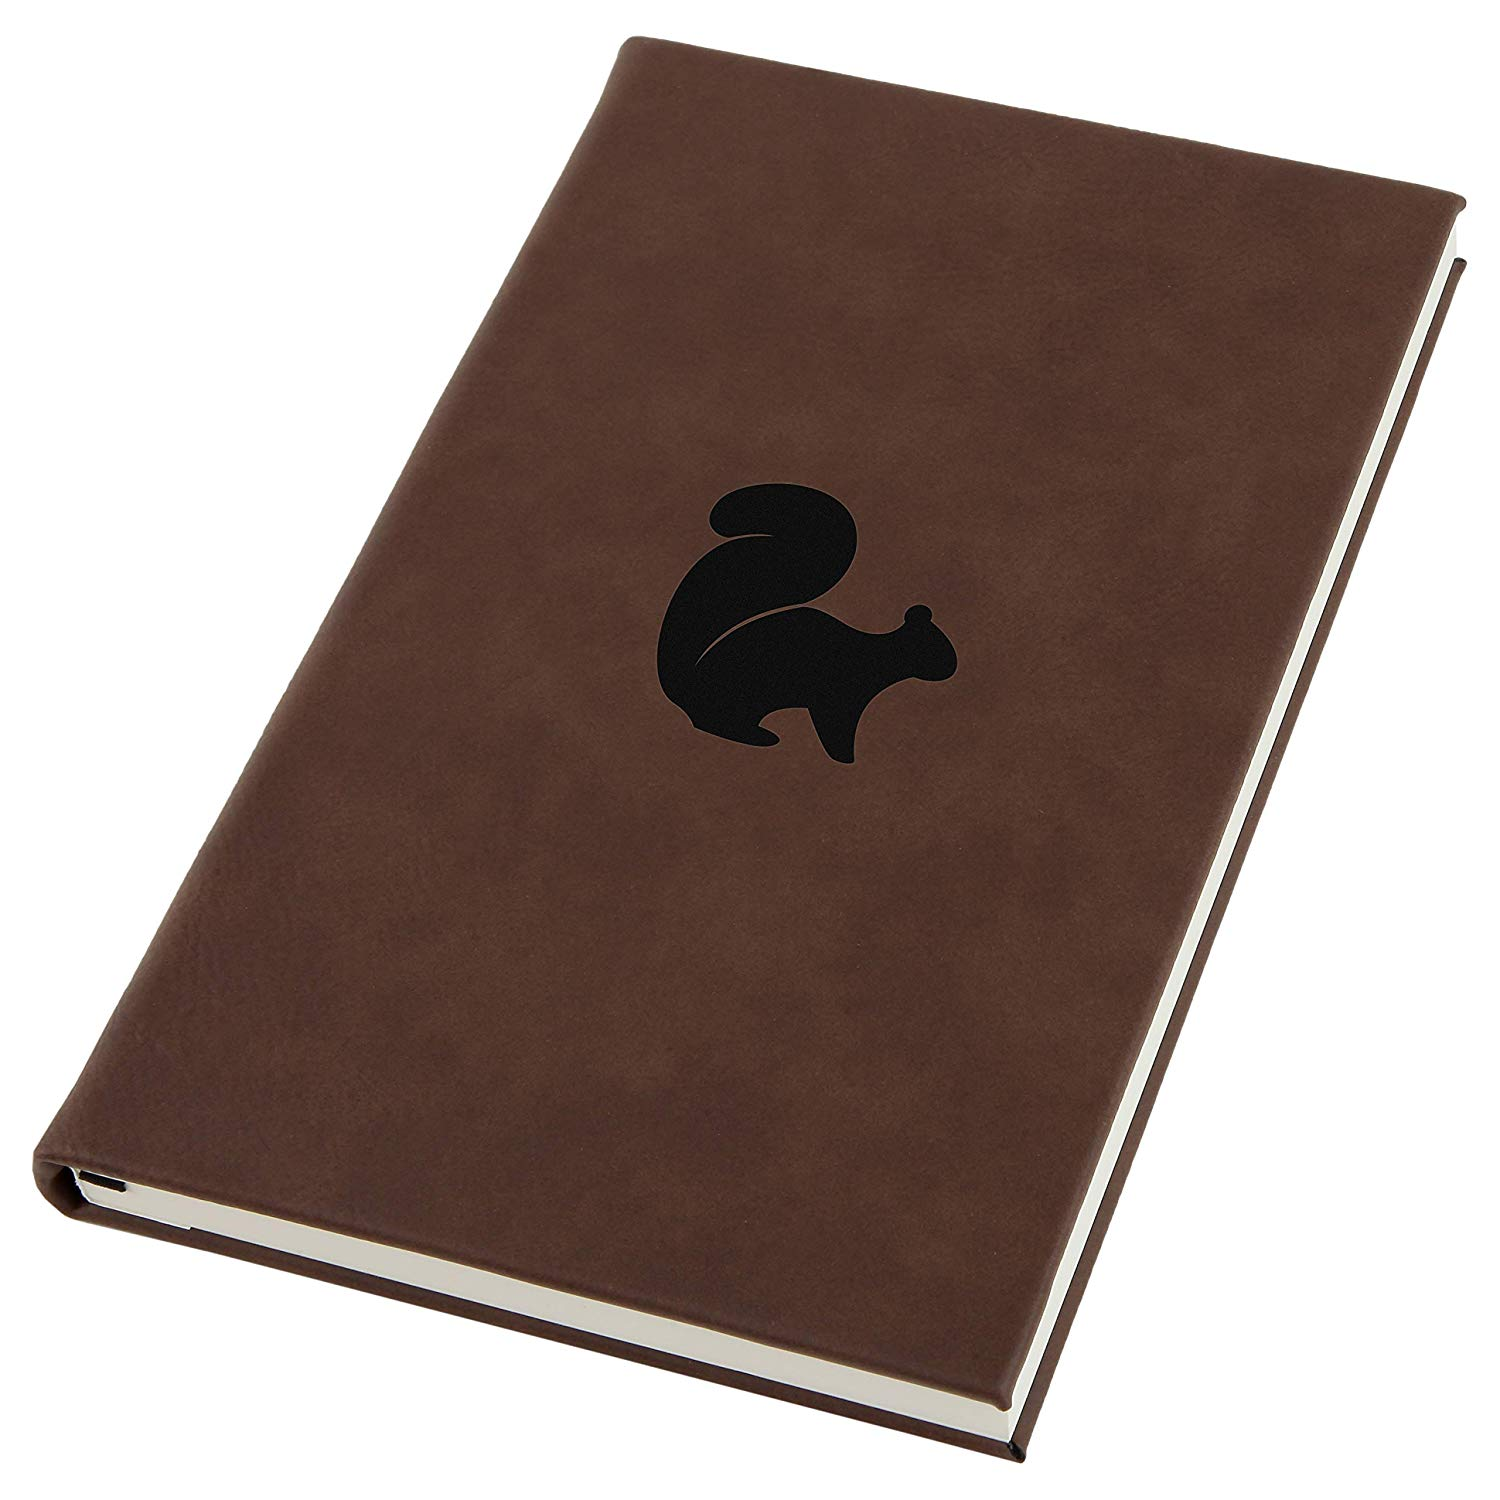 Flying Squirrel Engraved A5 Leather Journal, Notebook, Personal Diary